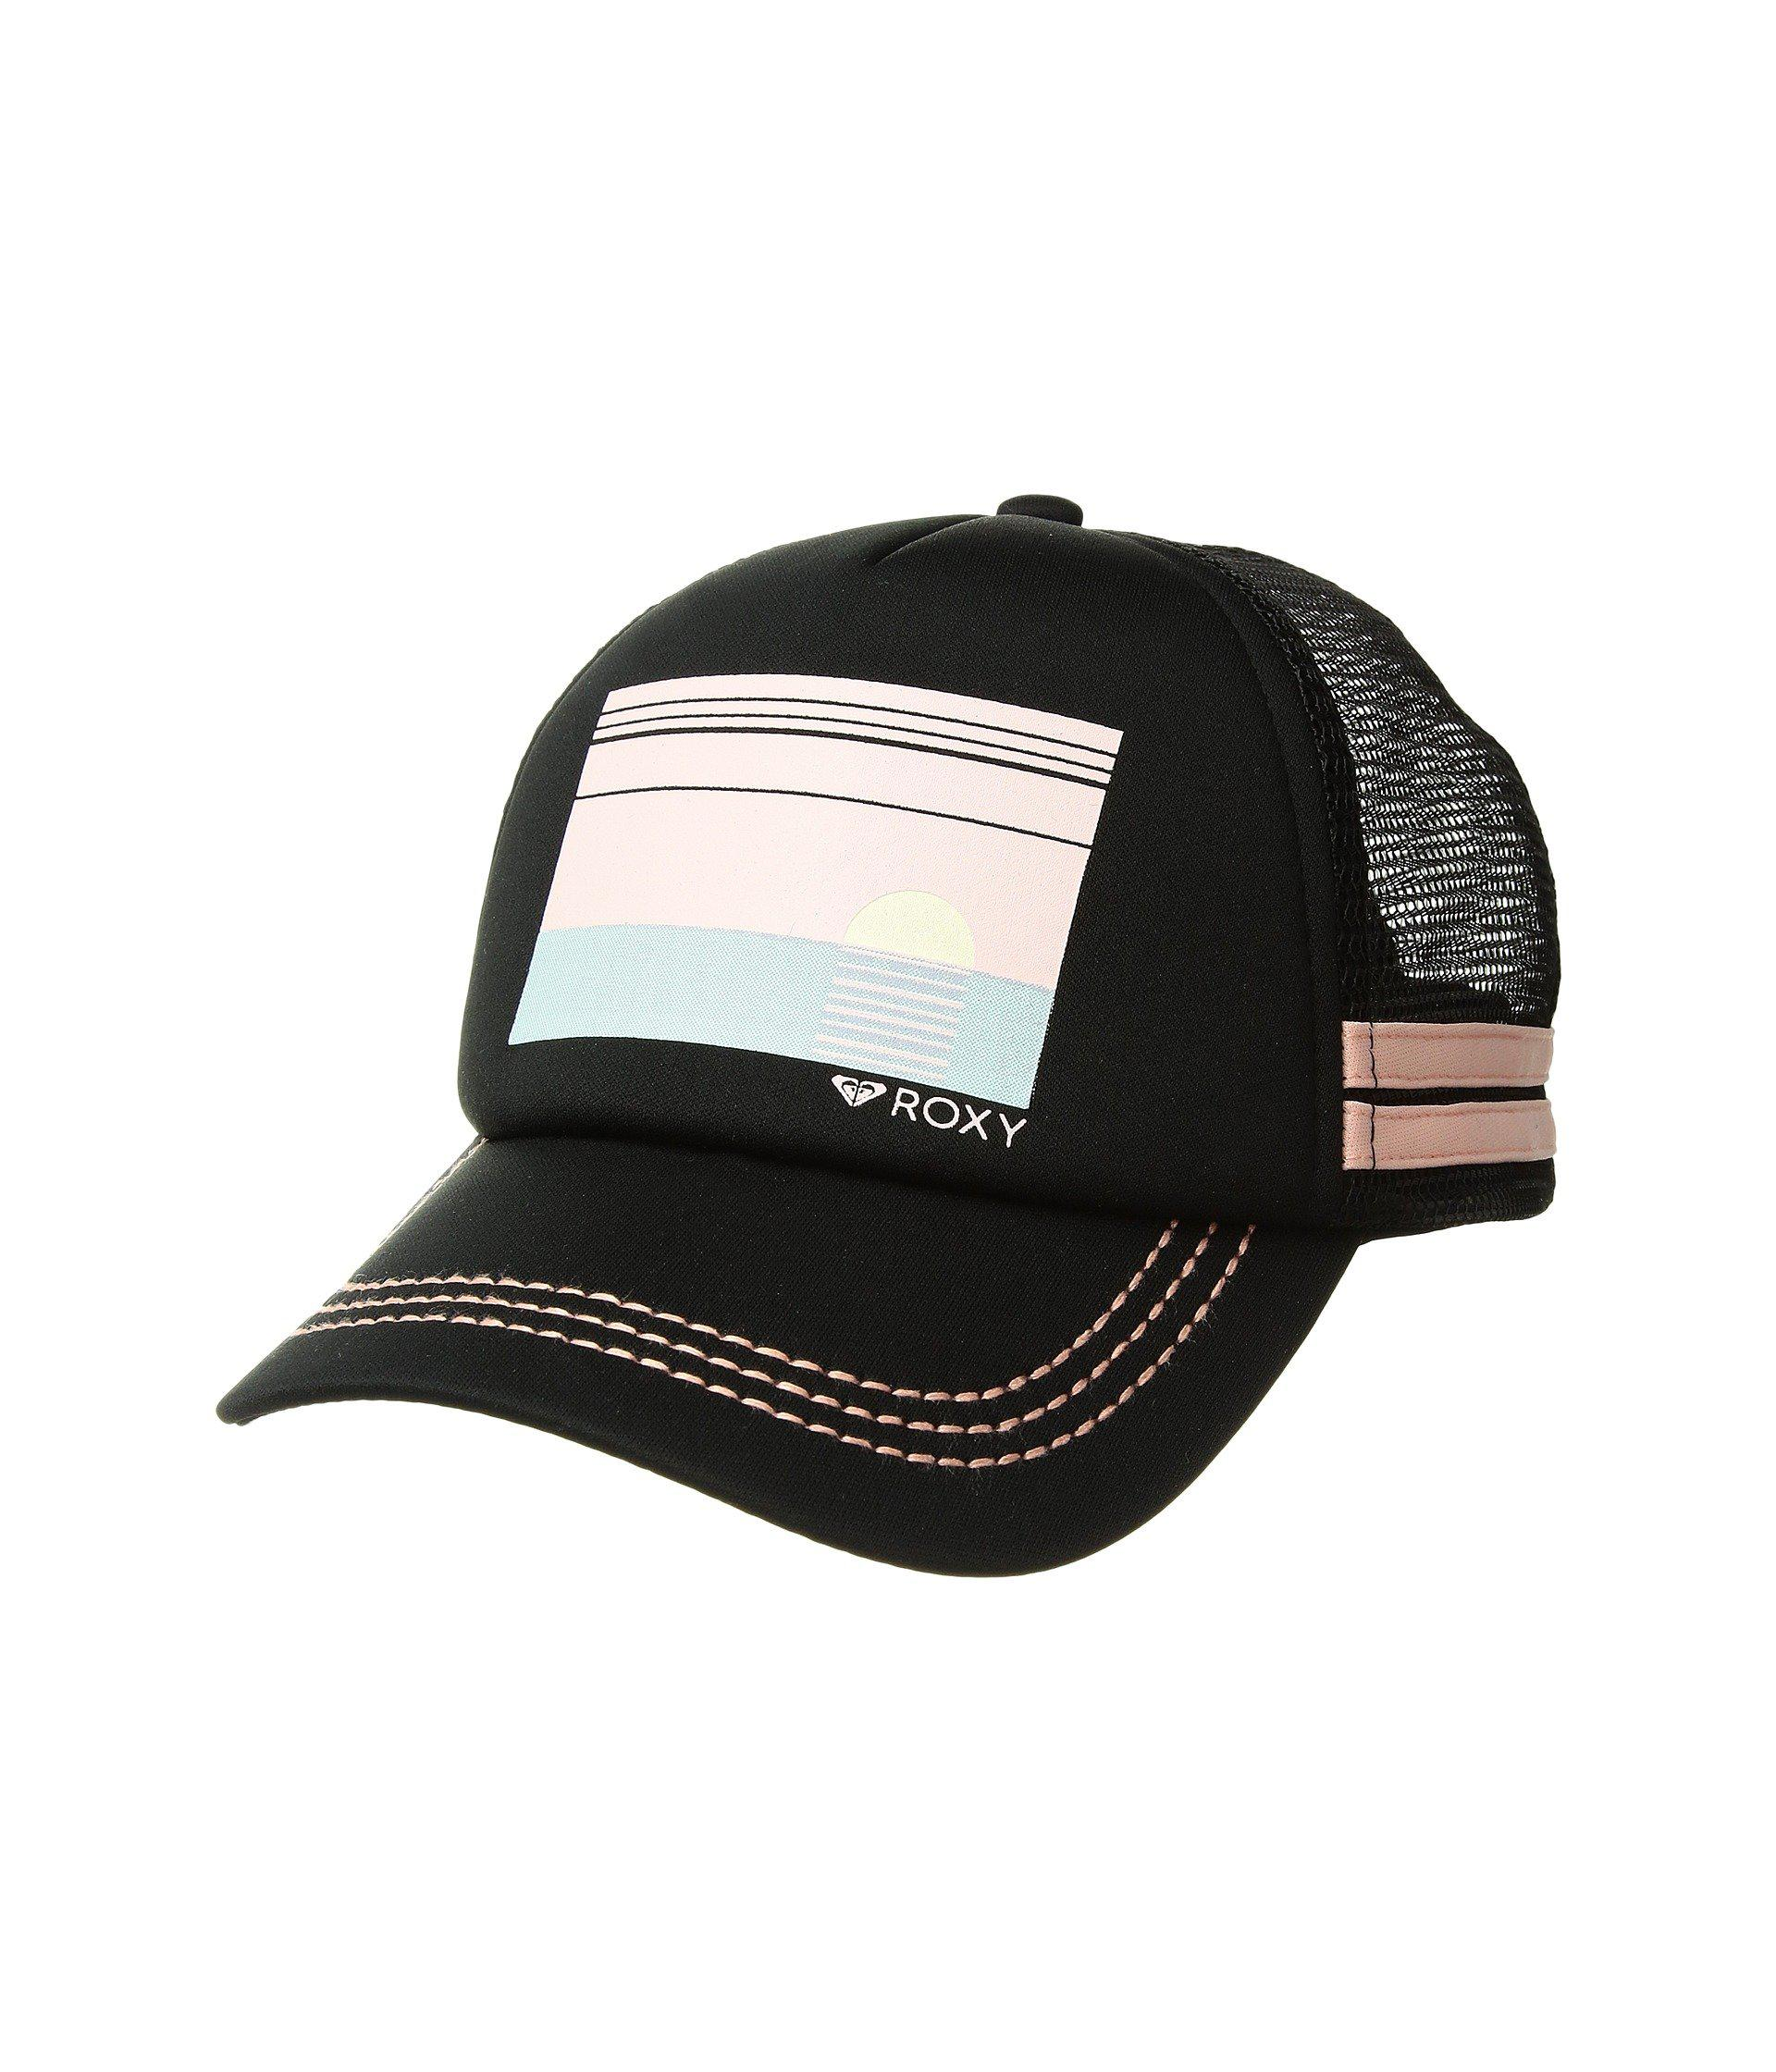 Lyst - Roxy Dig This Trucker Hat (lady Pink) Caps in Black c9697b0ee4f0